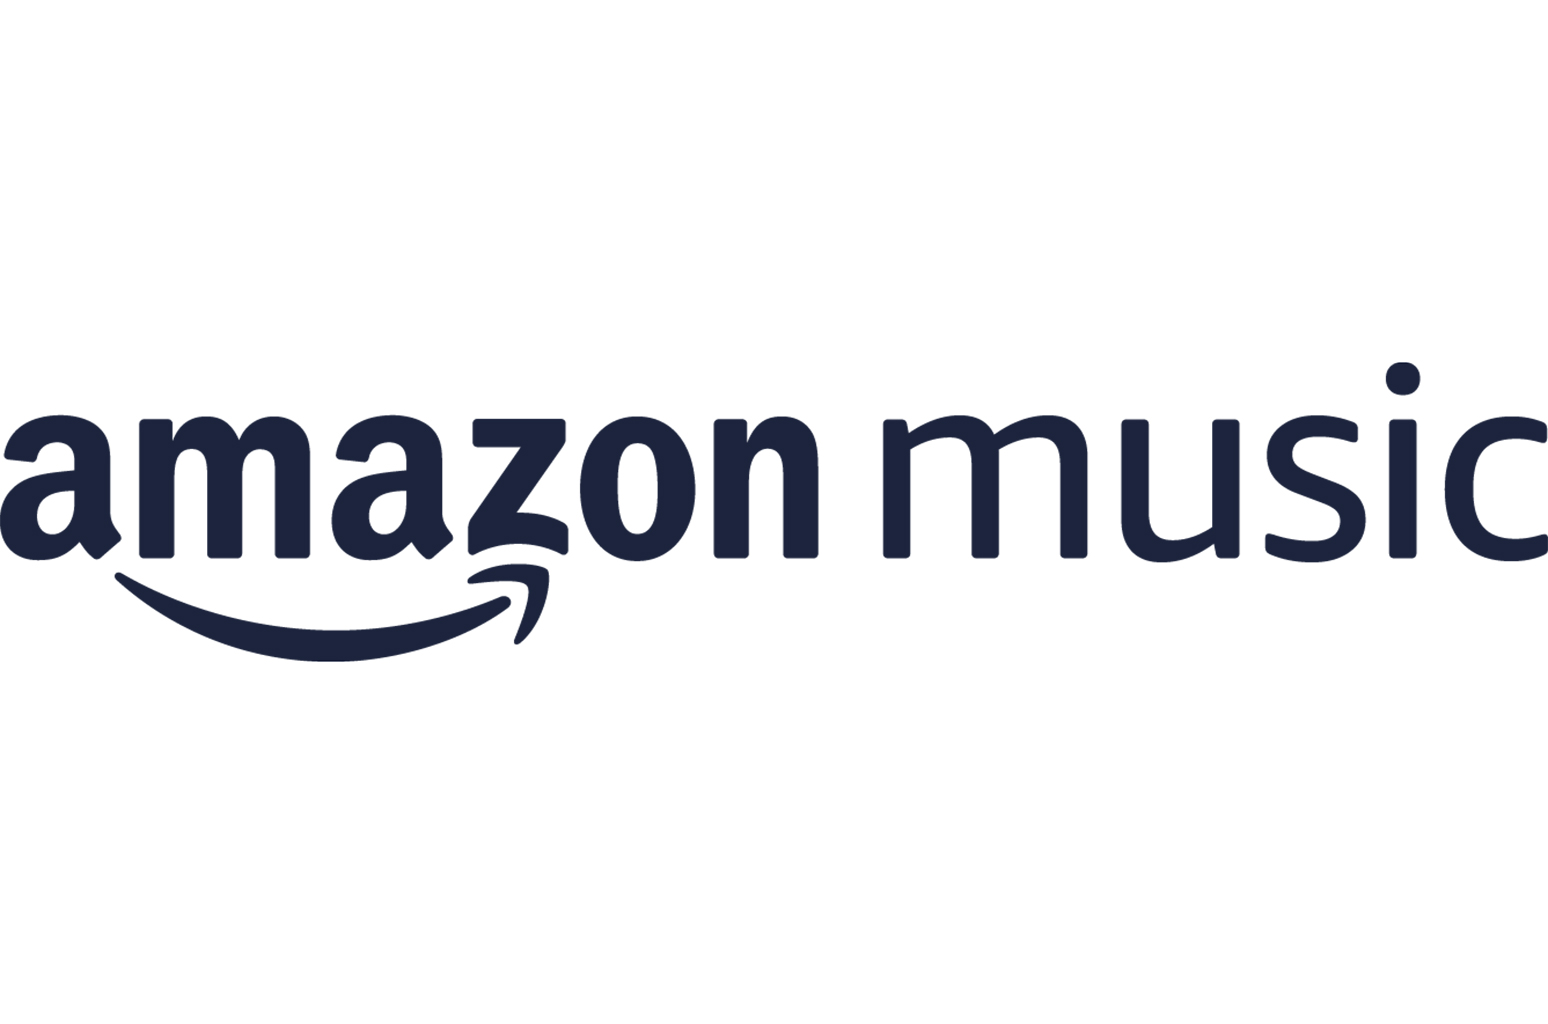 amazon-music-logo-2018-billboard-1548.jpg